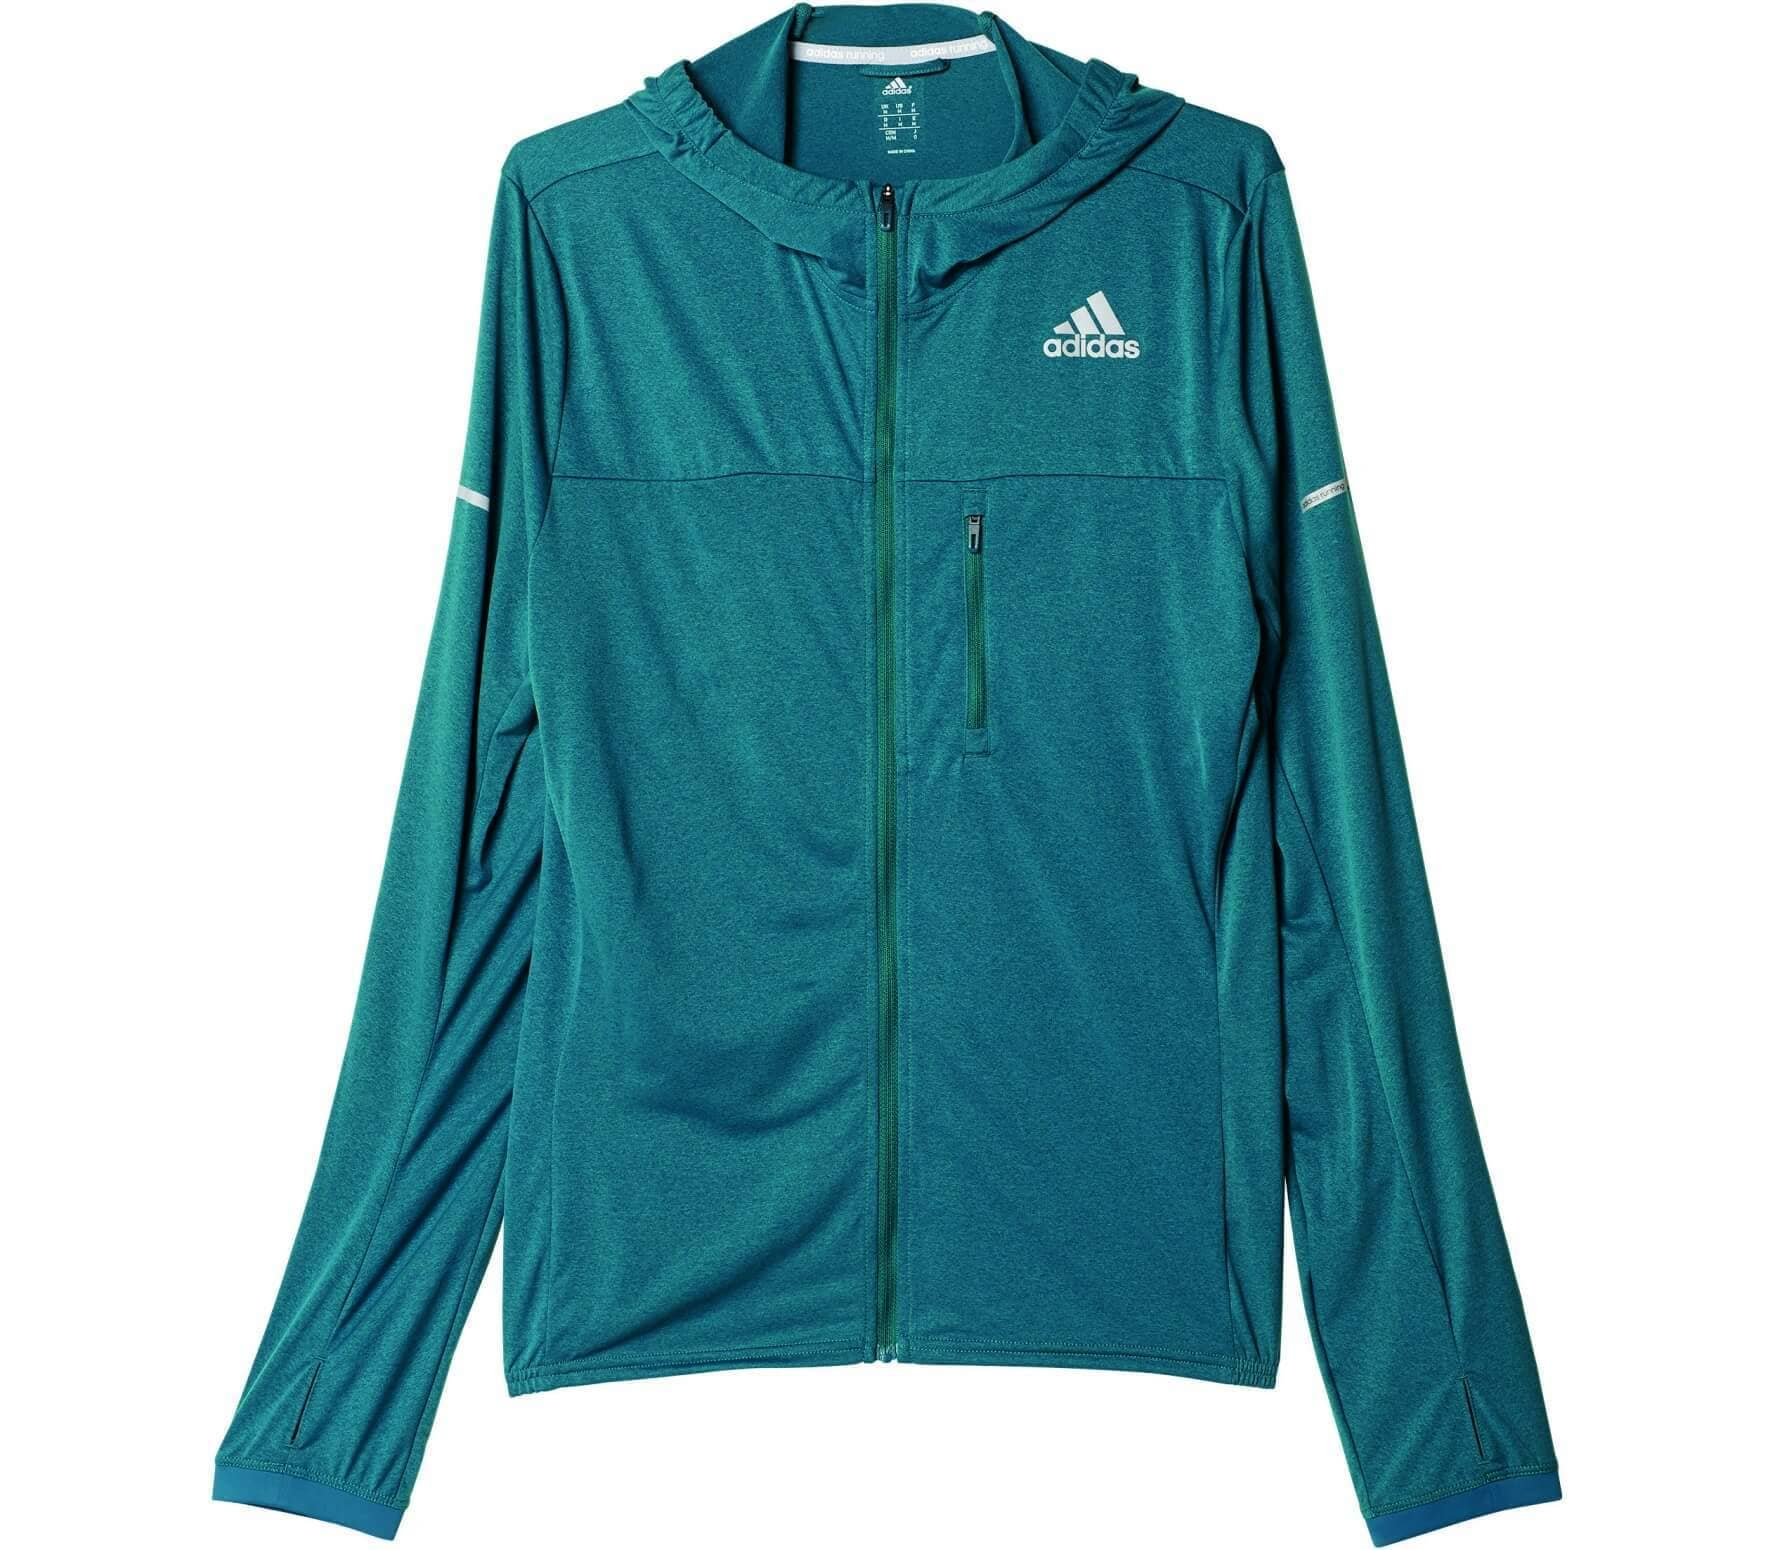 Adidas - Stretch men's running jacket (dark green) - M thumbnail